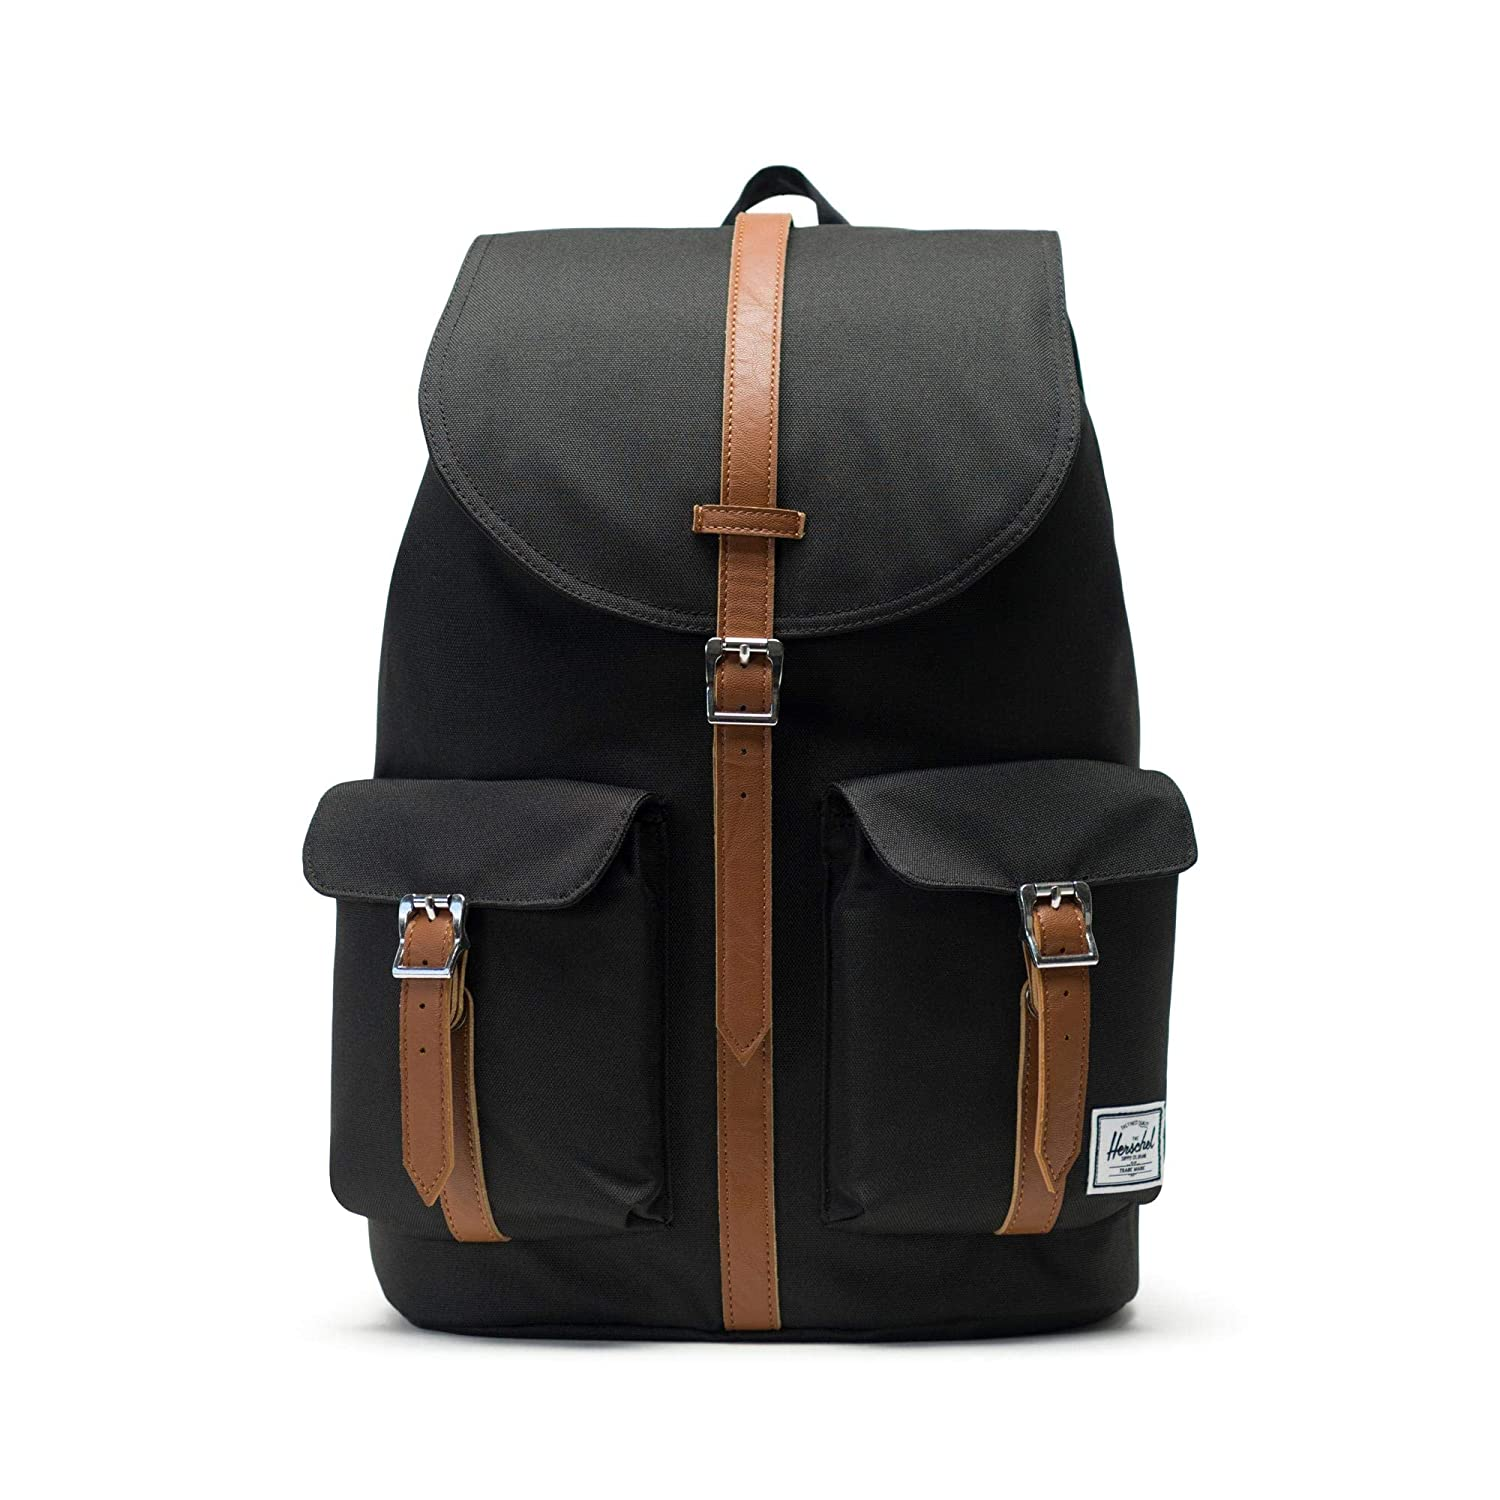 Herschel Dawson Backpack - Black Tan Synthetic Leather